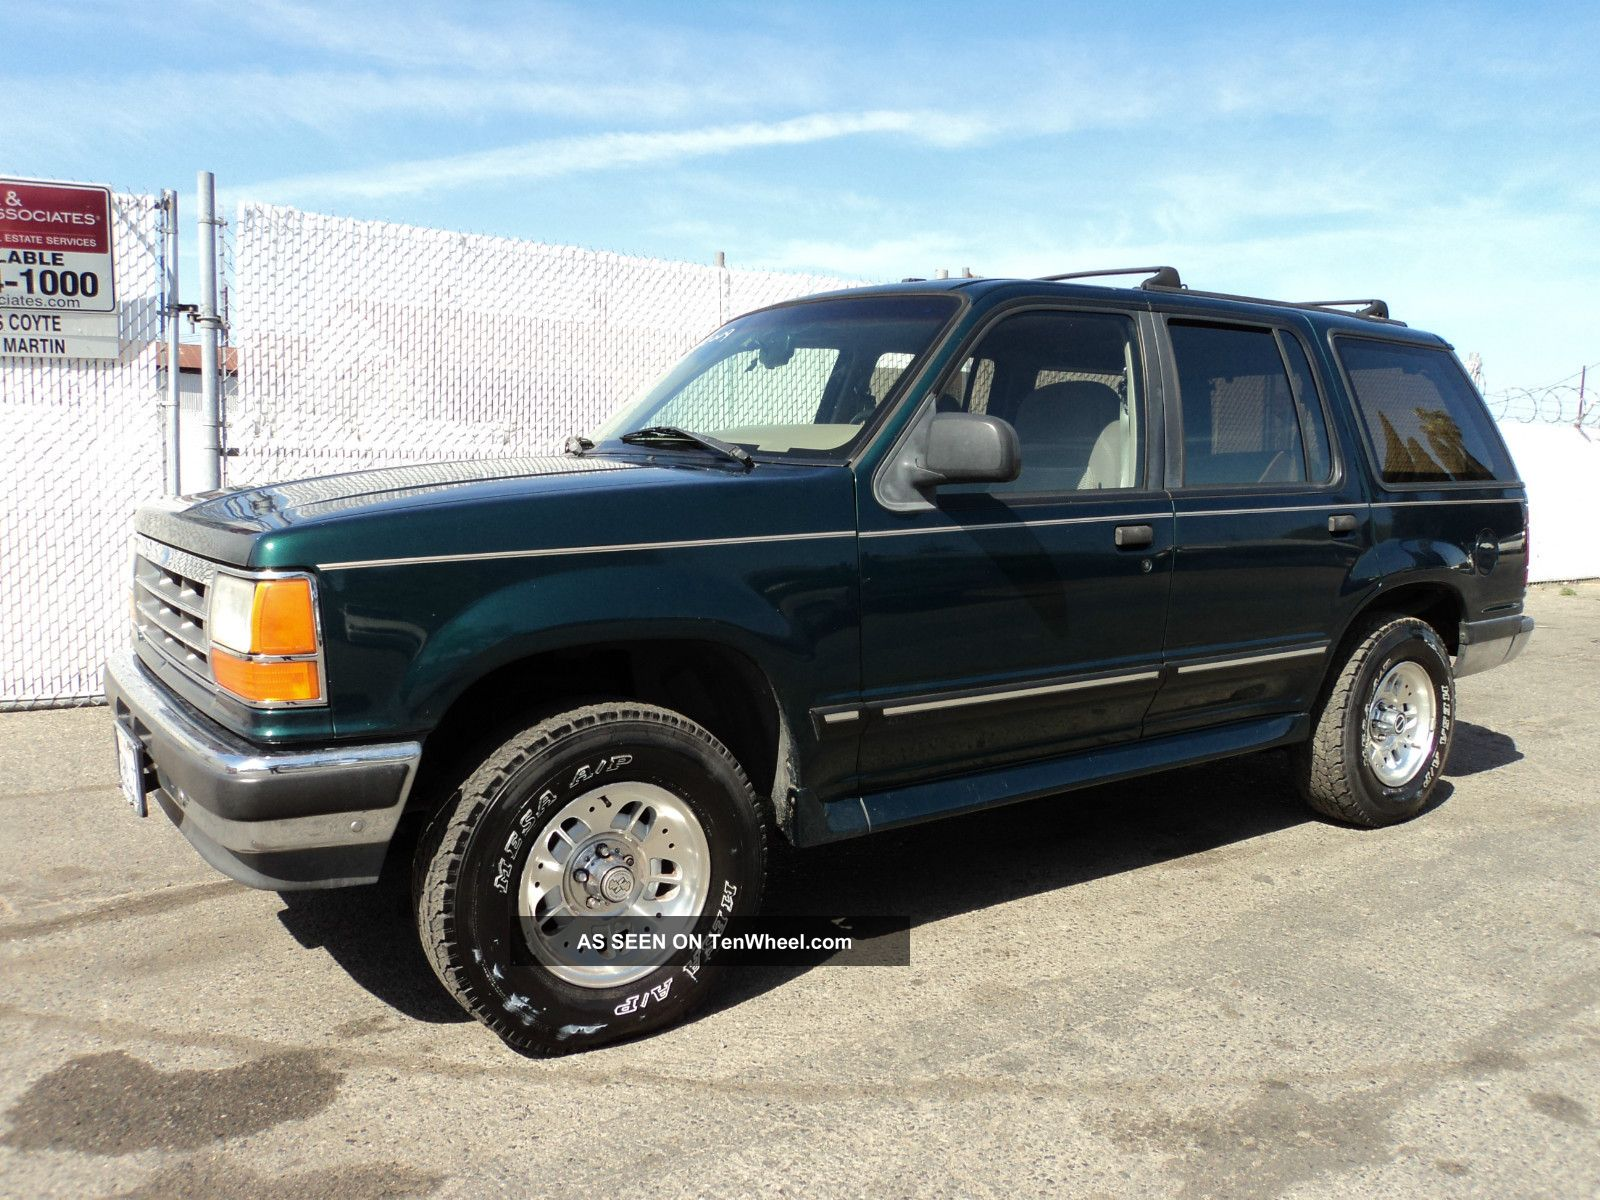 1994 ford explorer information and photos zombiedrive. Black Bedroom Furniture Sets. Home Design Ideas